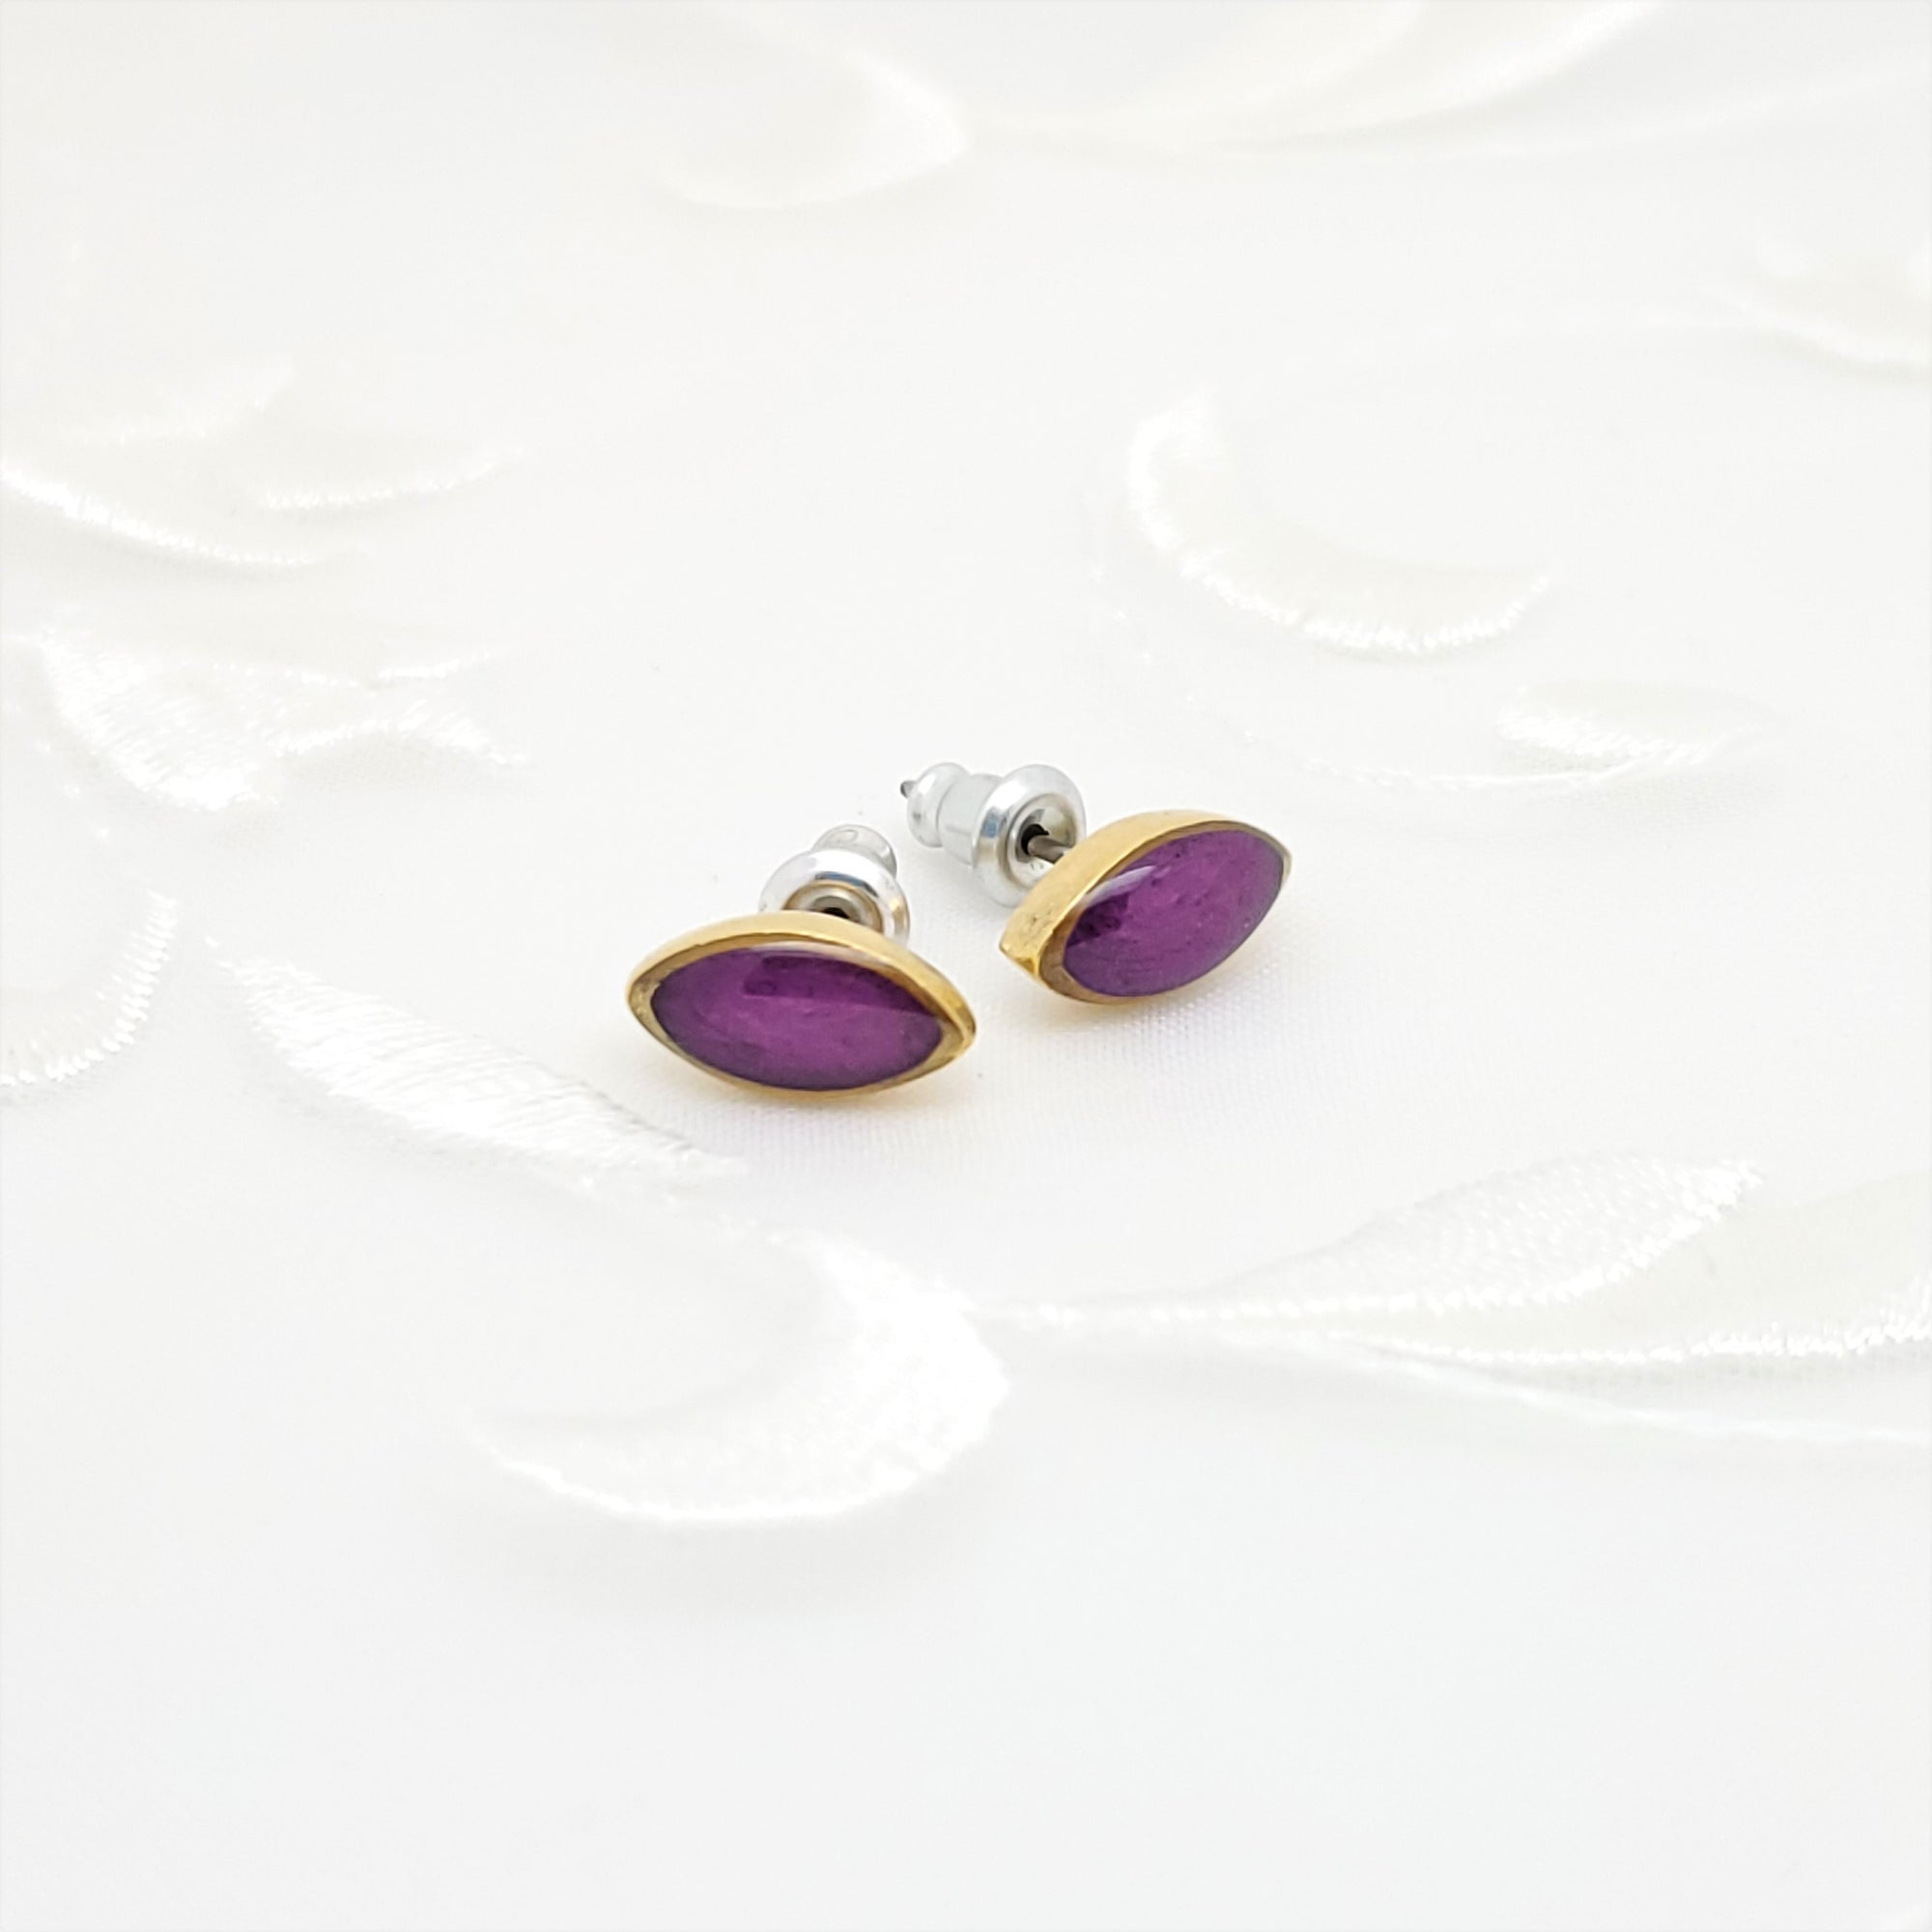 Antique Gold Navette Stud Earrings with Transparent Amethyst Resin